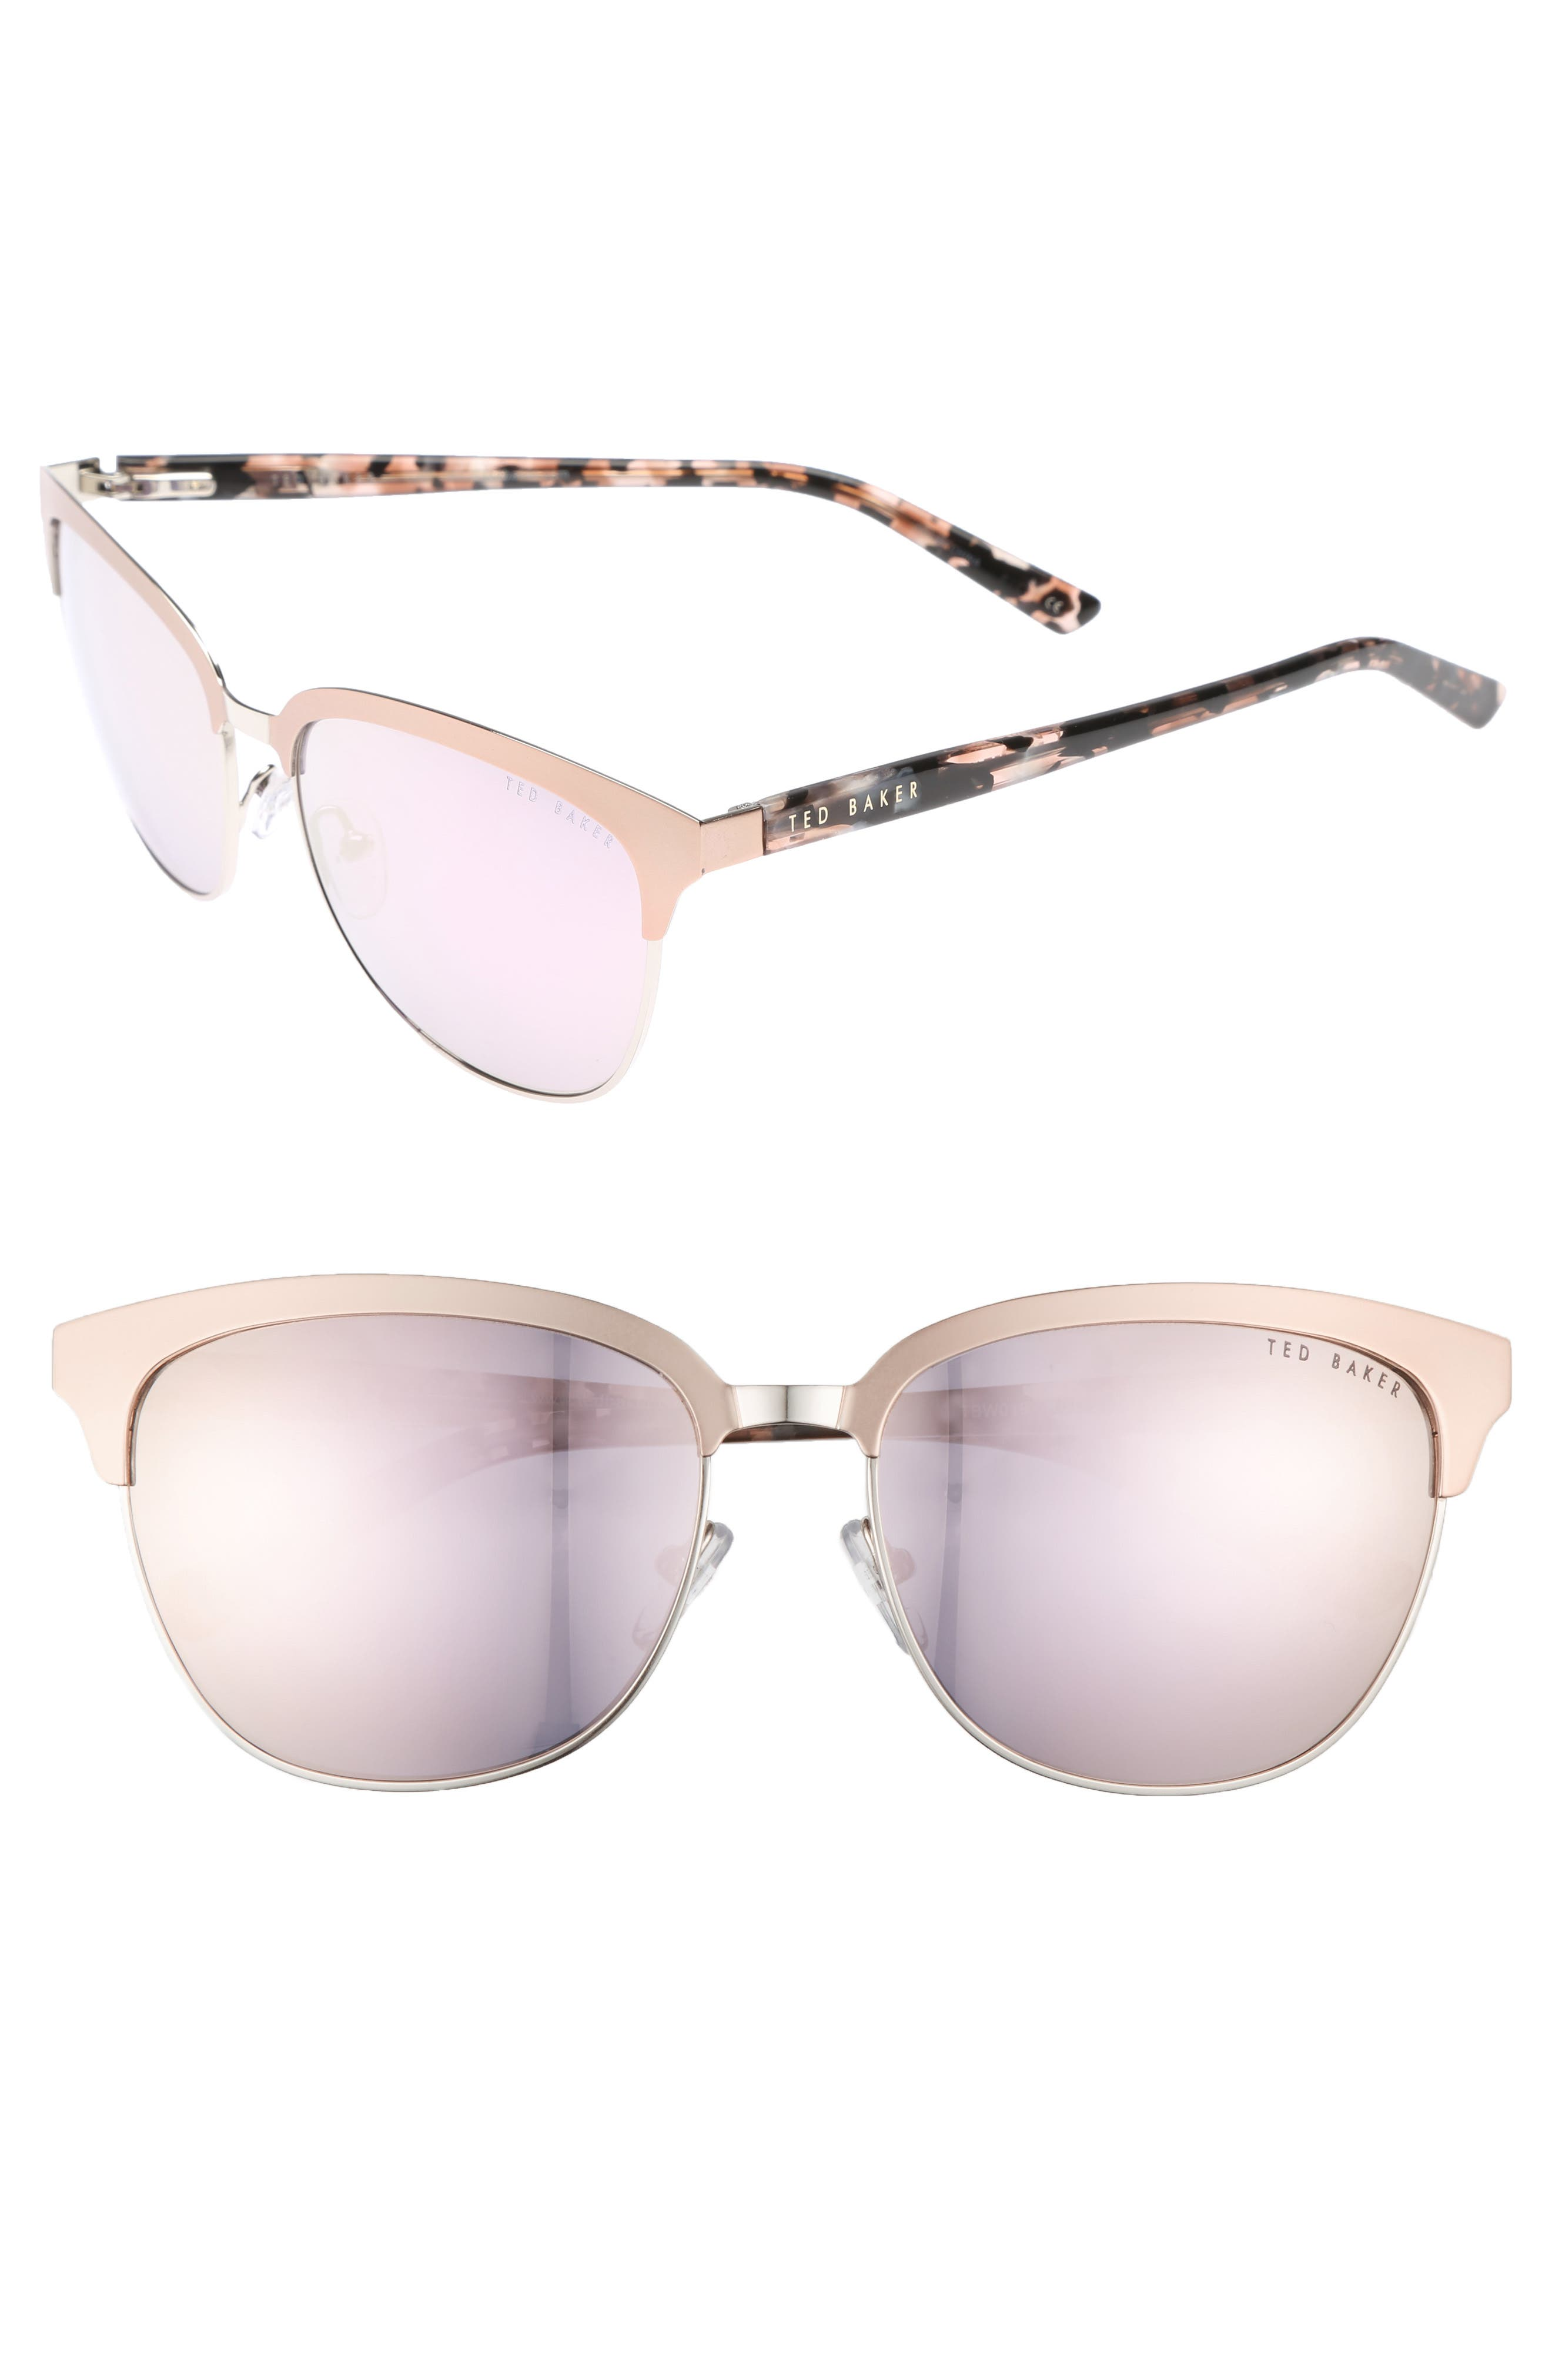 57mm Mirrored Sunglasses,                         Main,                         color, ROSE GOLD